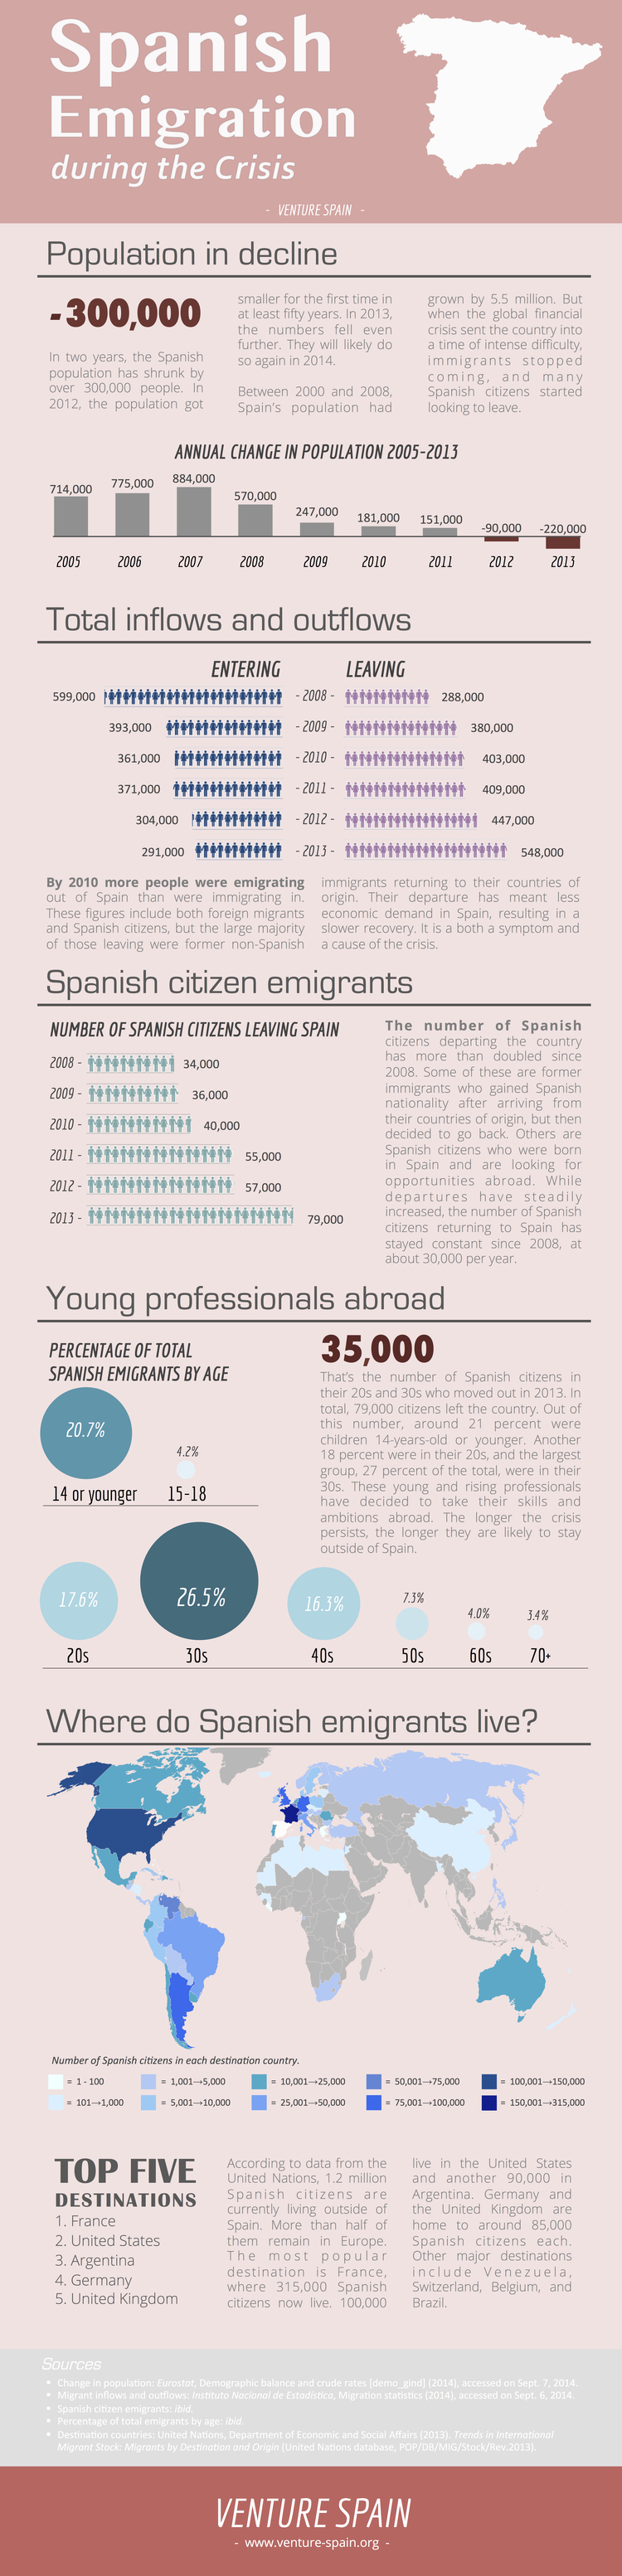 Infographic: Spanish Emigration during the Crisis